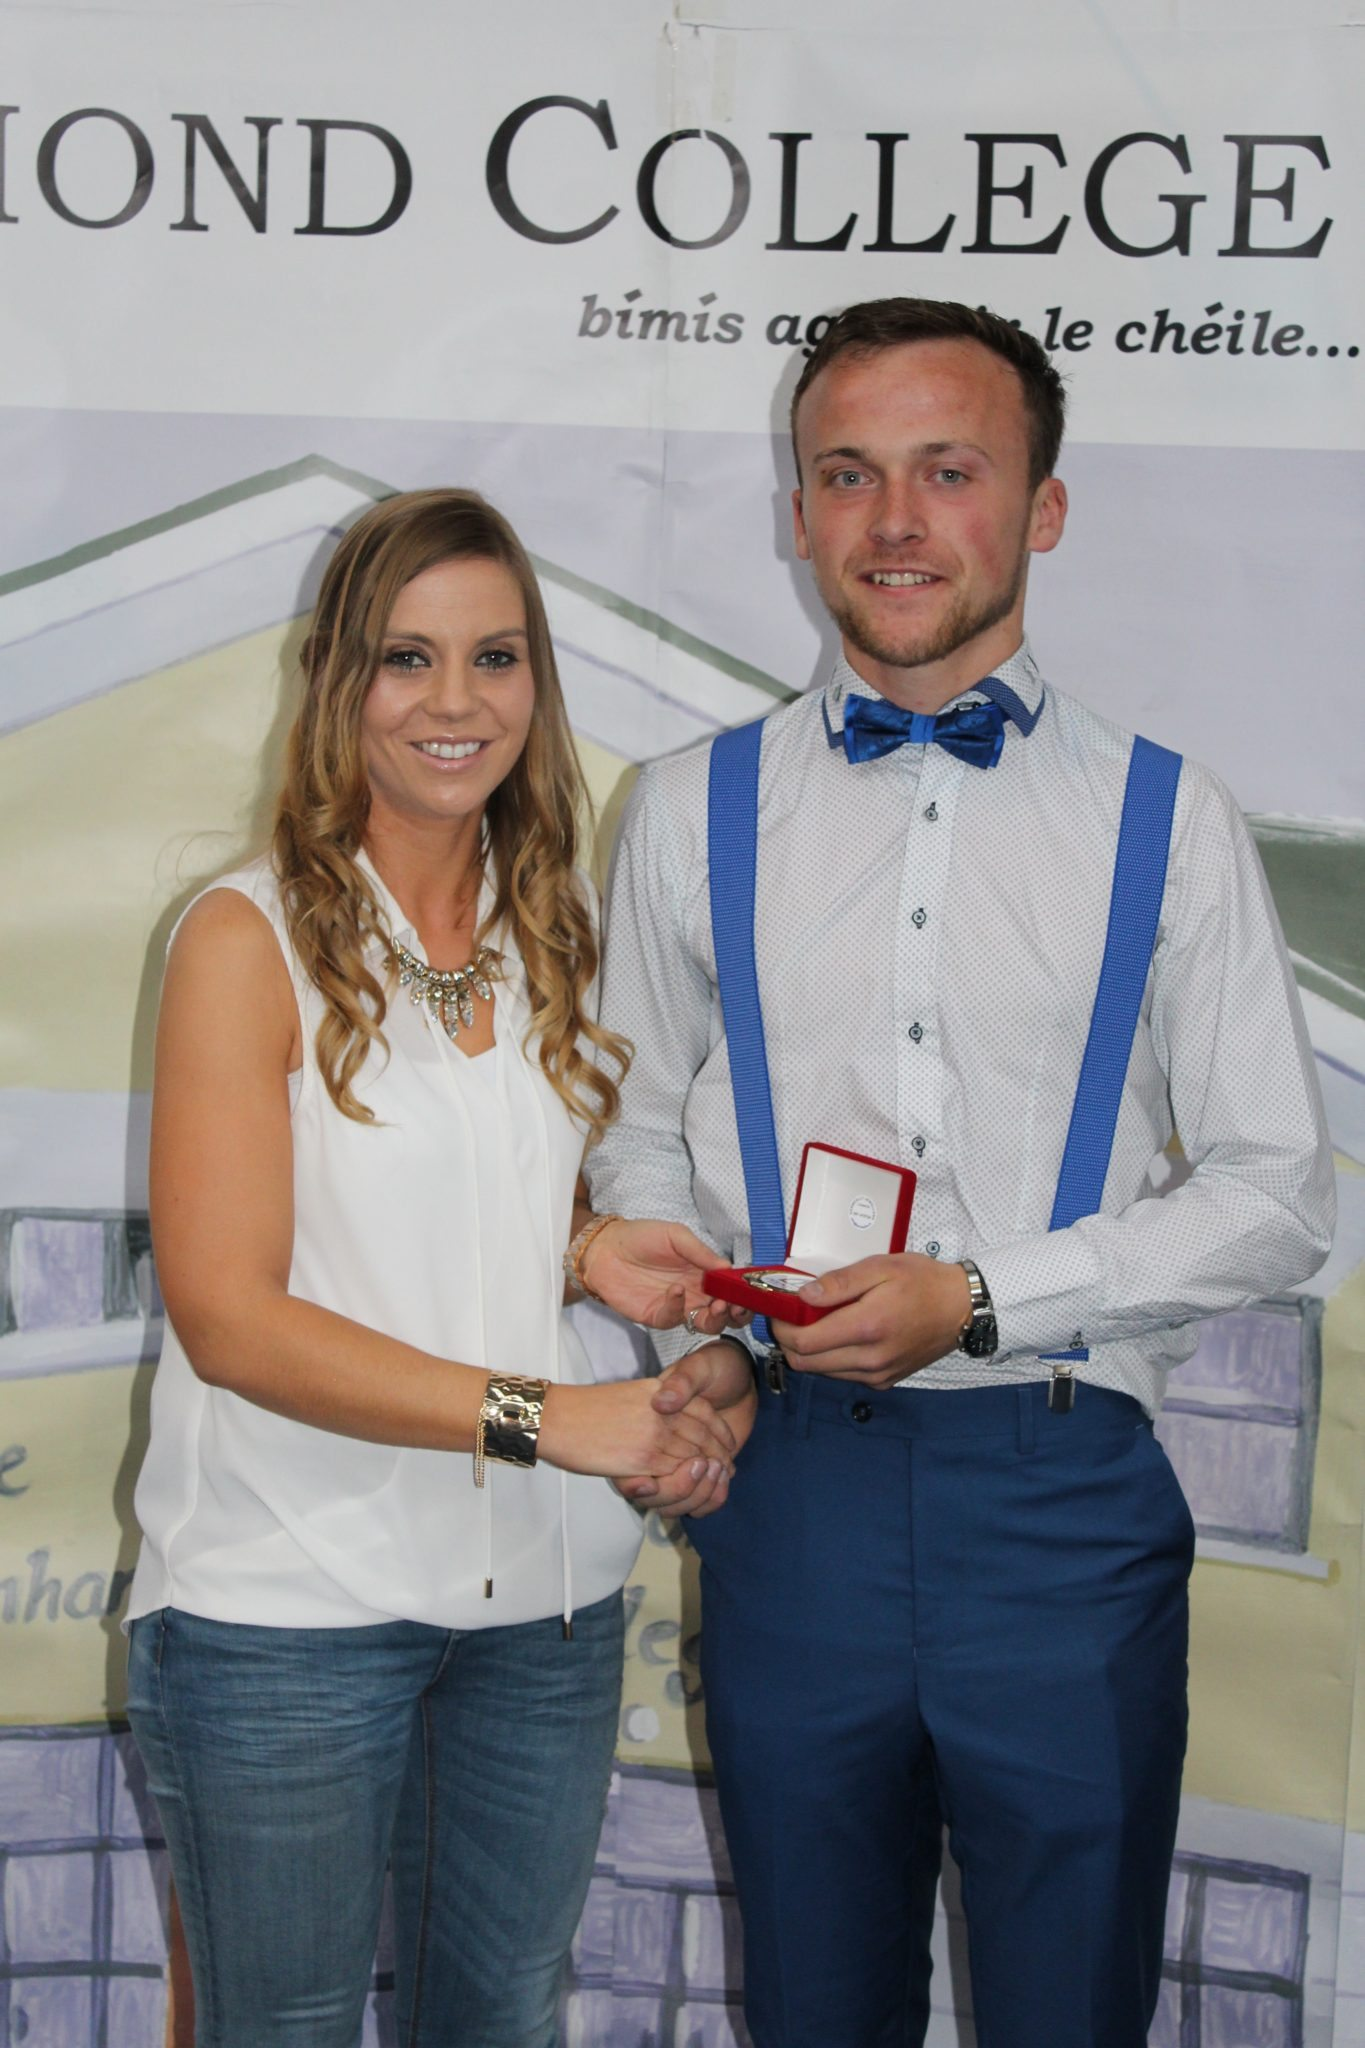 Desmond College Leaving Certificate Graduation : May 2015: Sports Awards: William Hurley with Ms Corkery